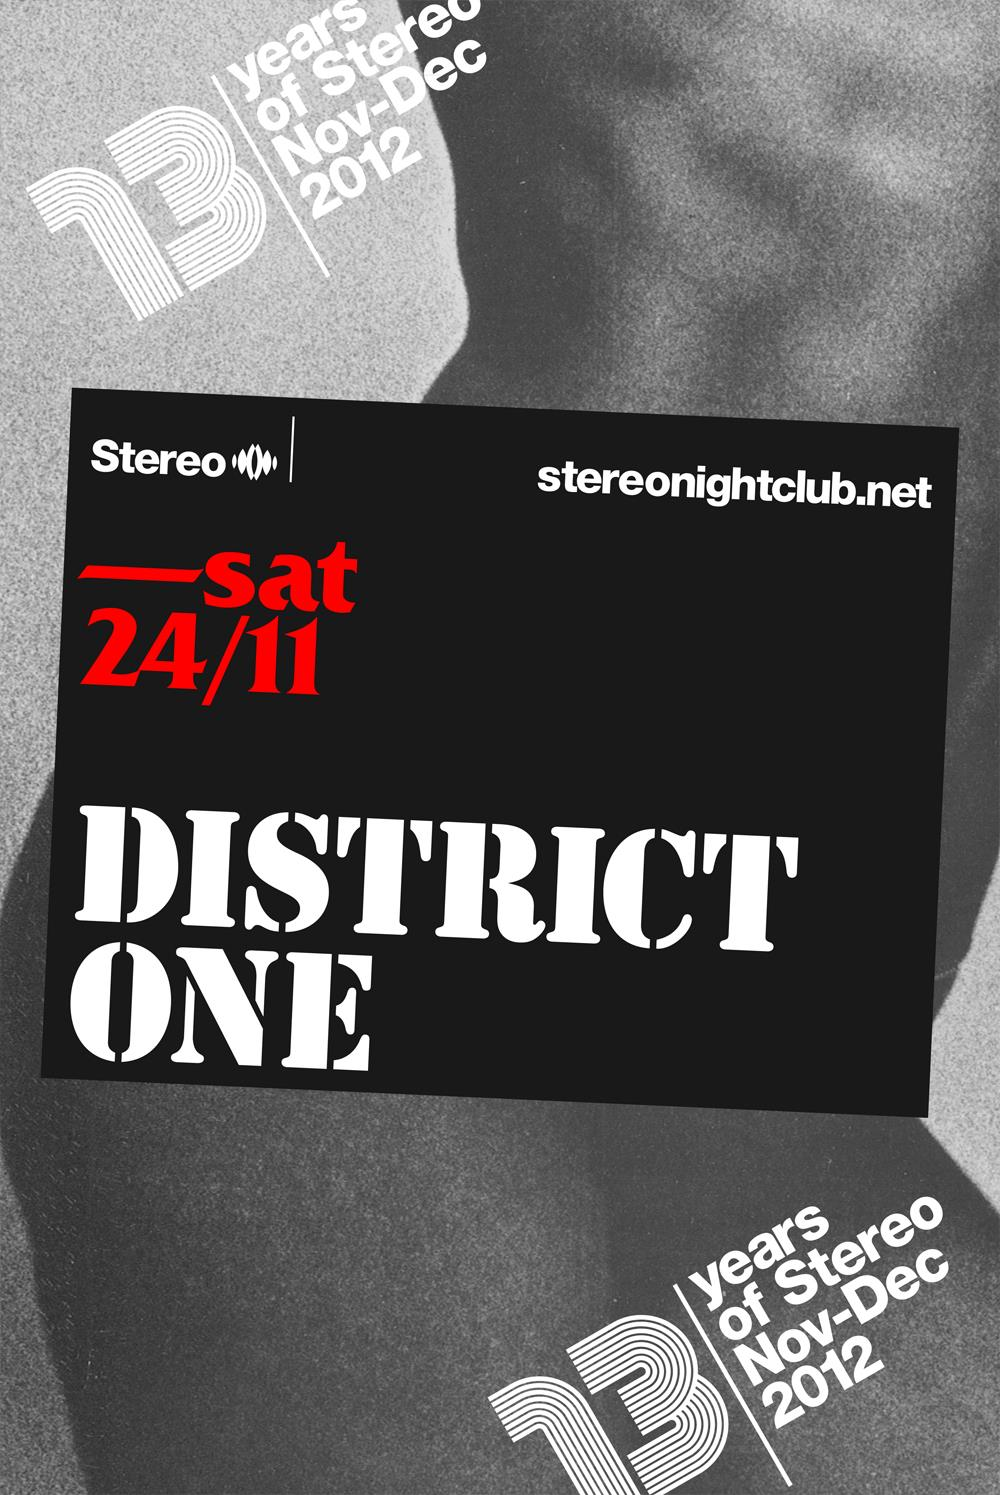 District One Stereo Montreal